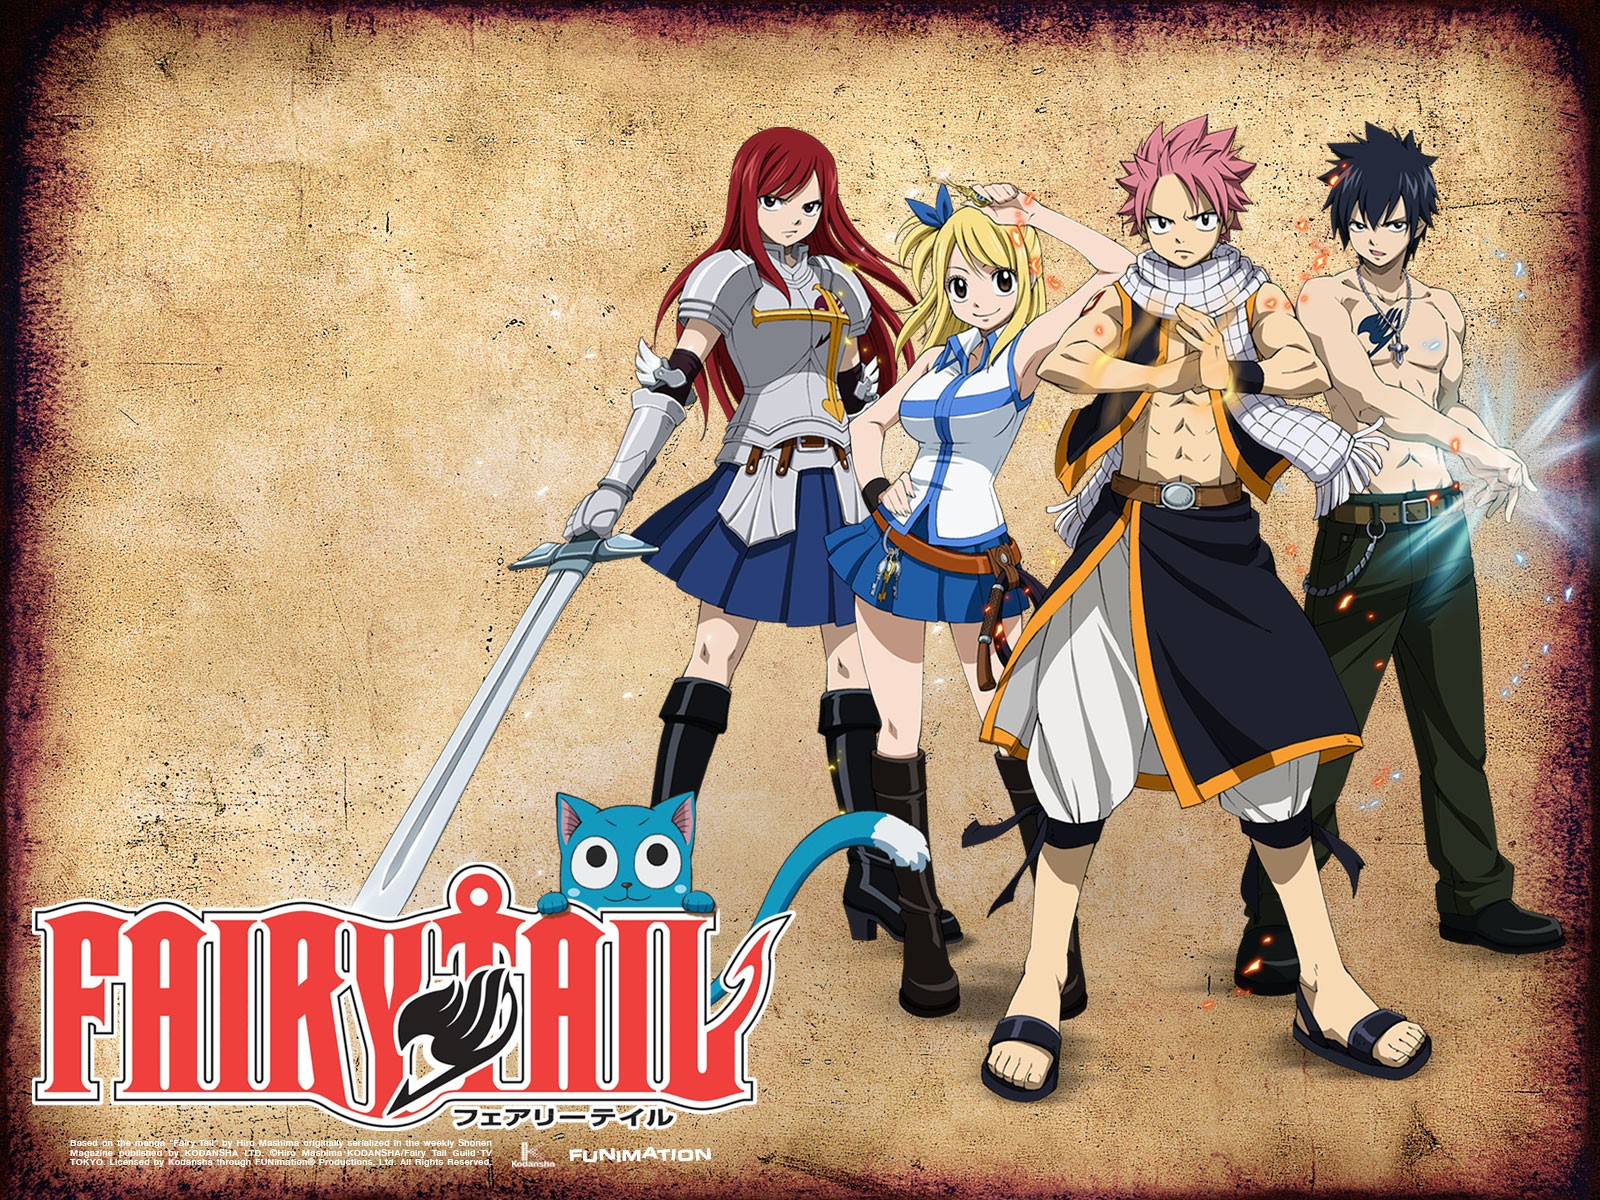 Fairy Tail Wallpaper And Background Image - 2011 Anime Fairy Tail , HD Wallpaper & Backgrounds